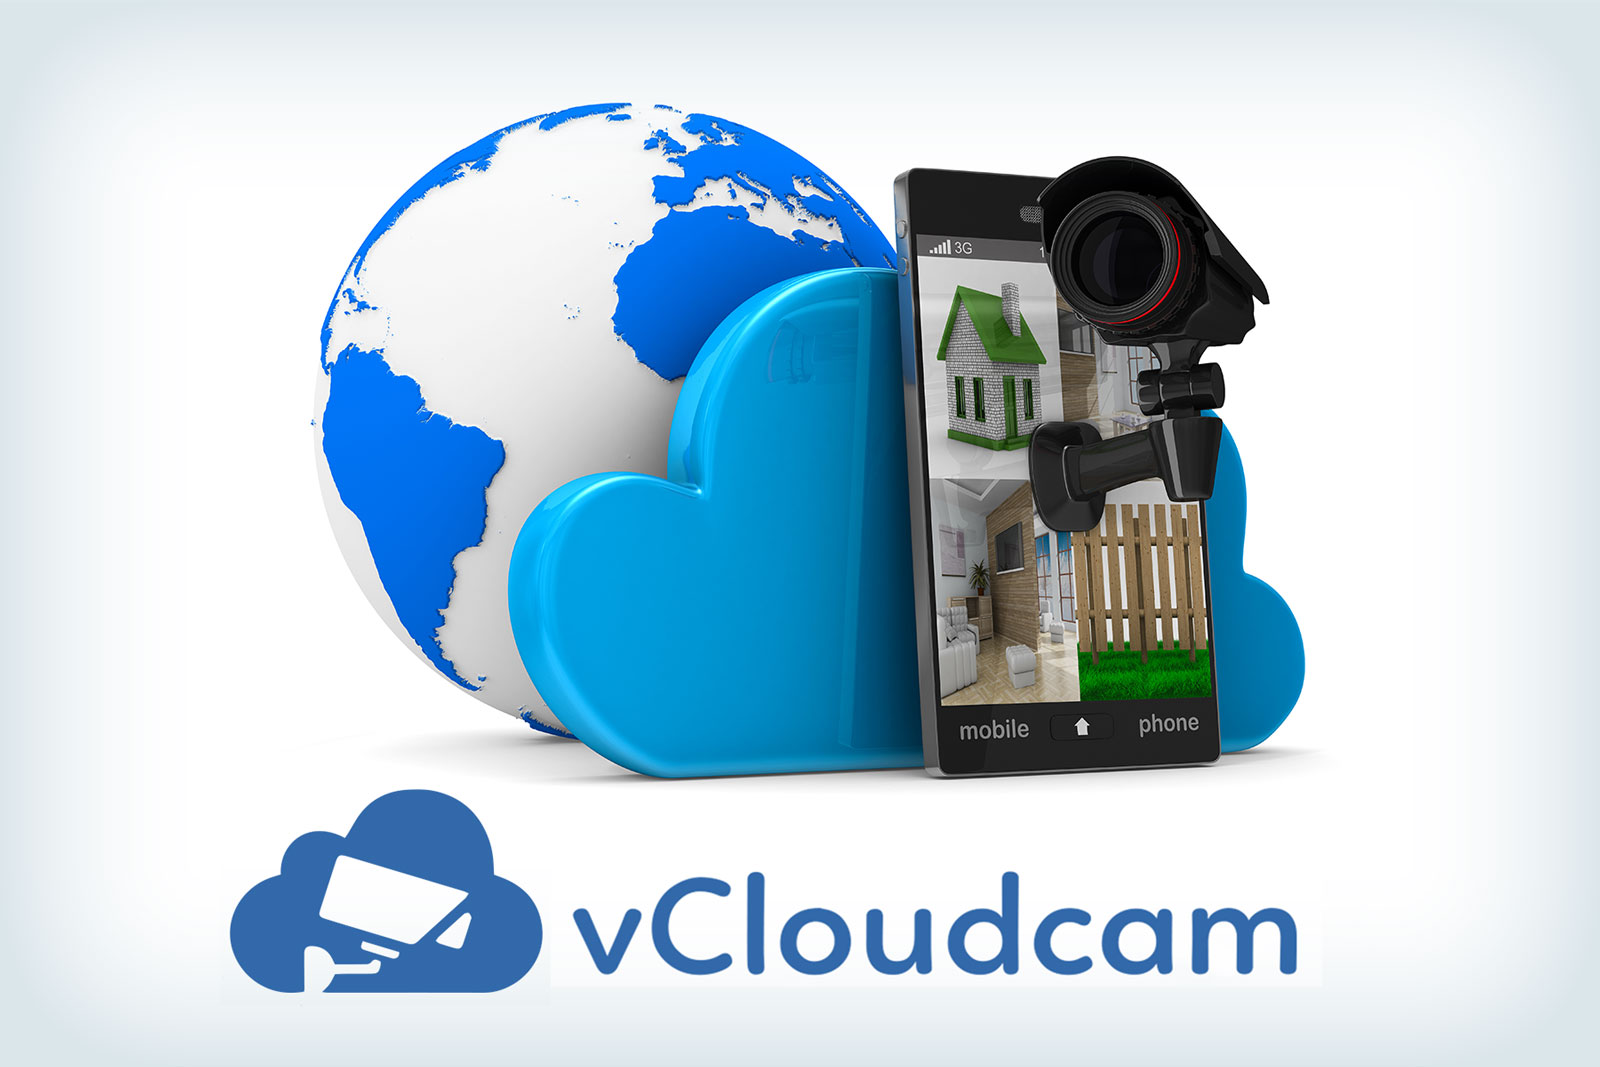 vCloudcam - Virtual security solution based on cloud computing platform